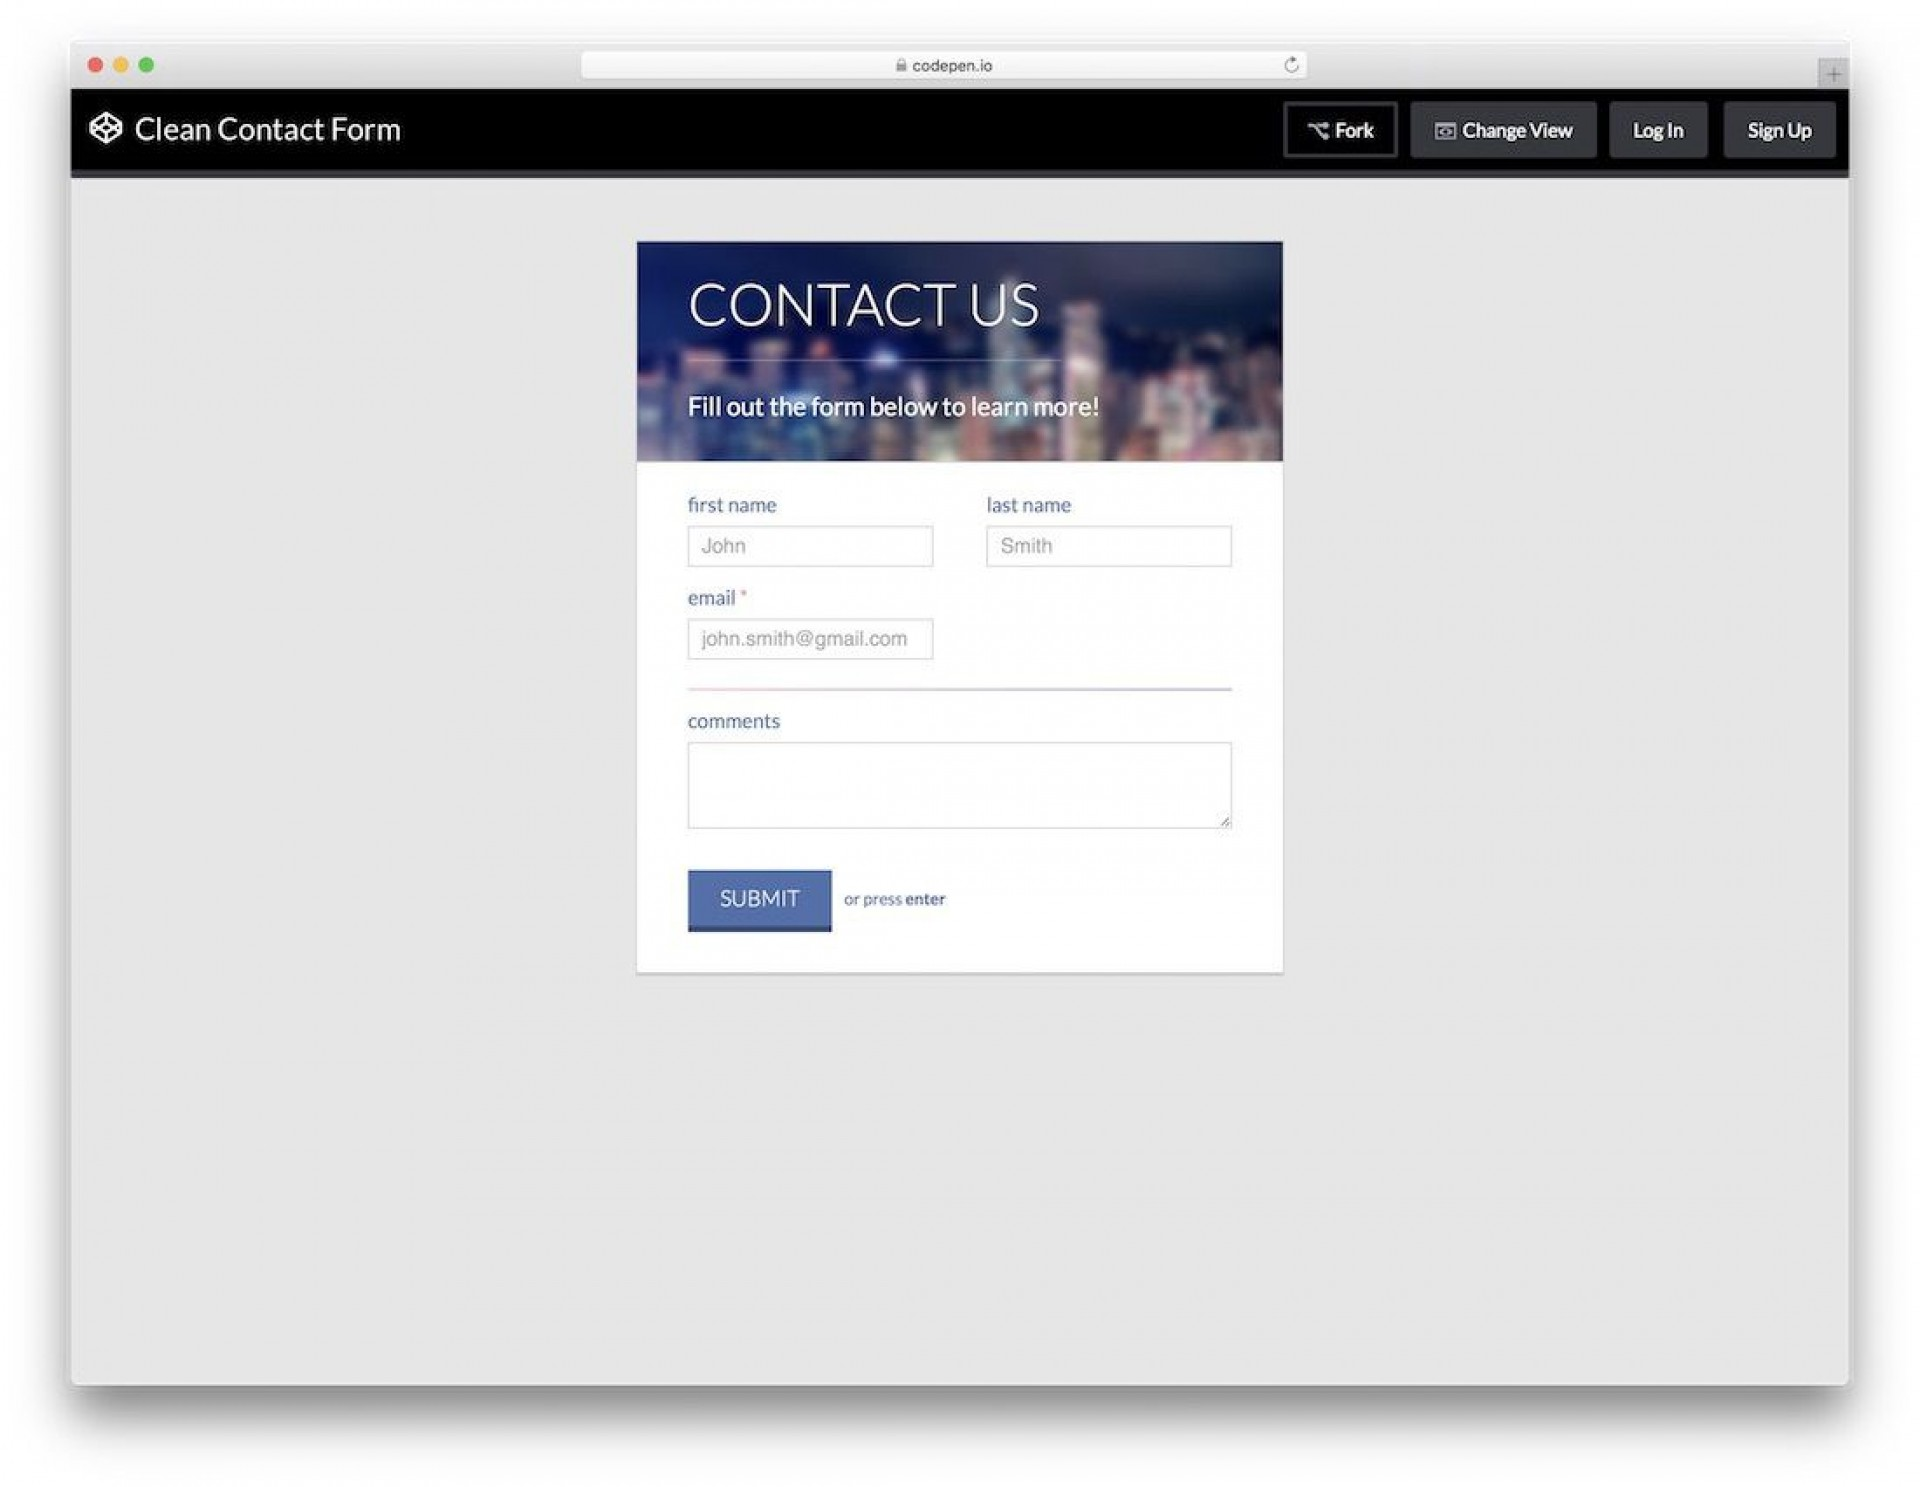 000 Beautiful Free Html Form Template Image  Templates Survey Application Download Registration1920